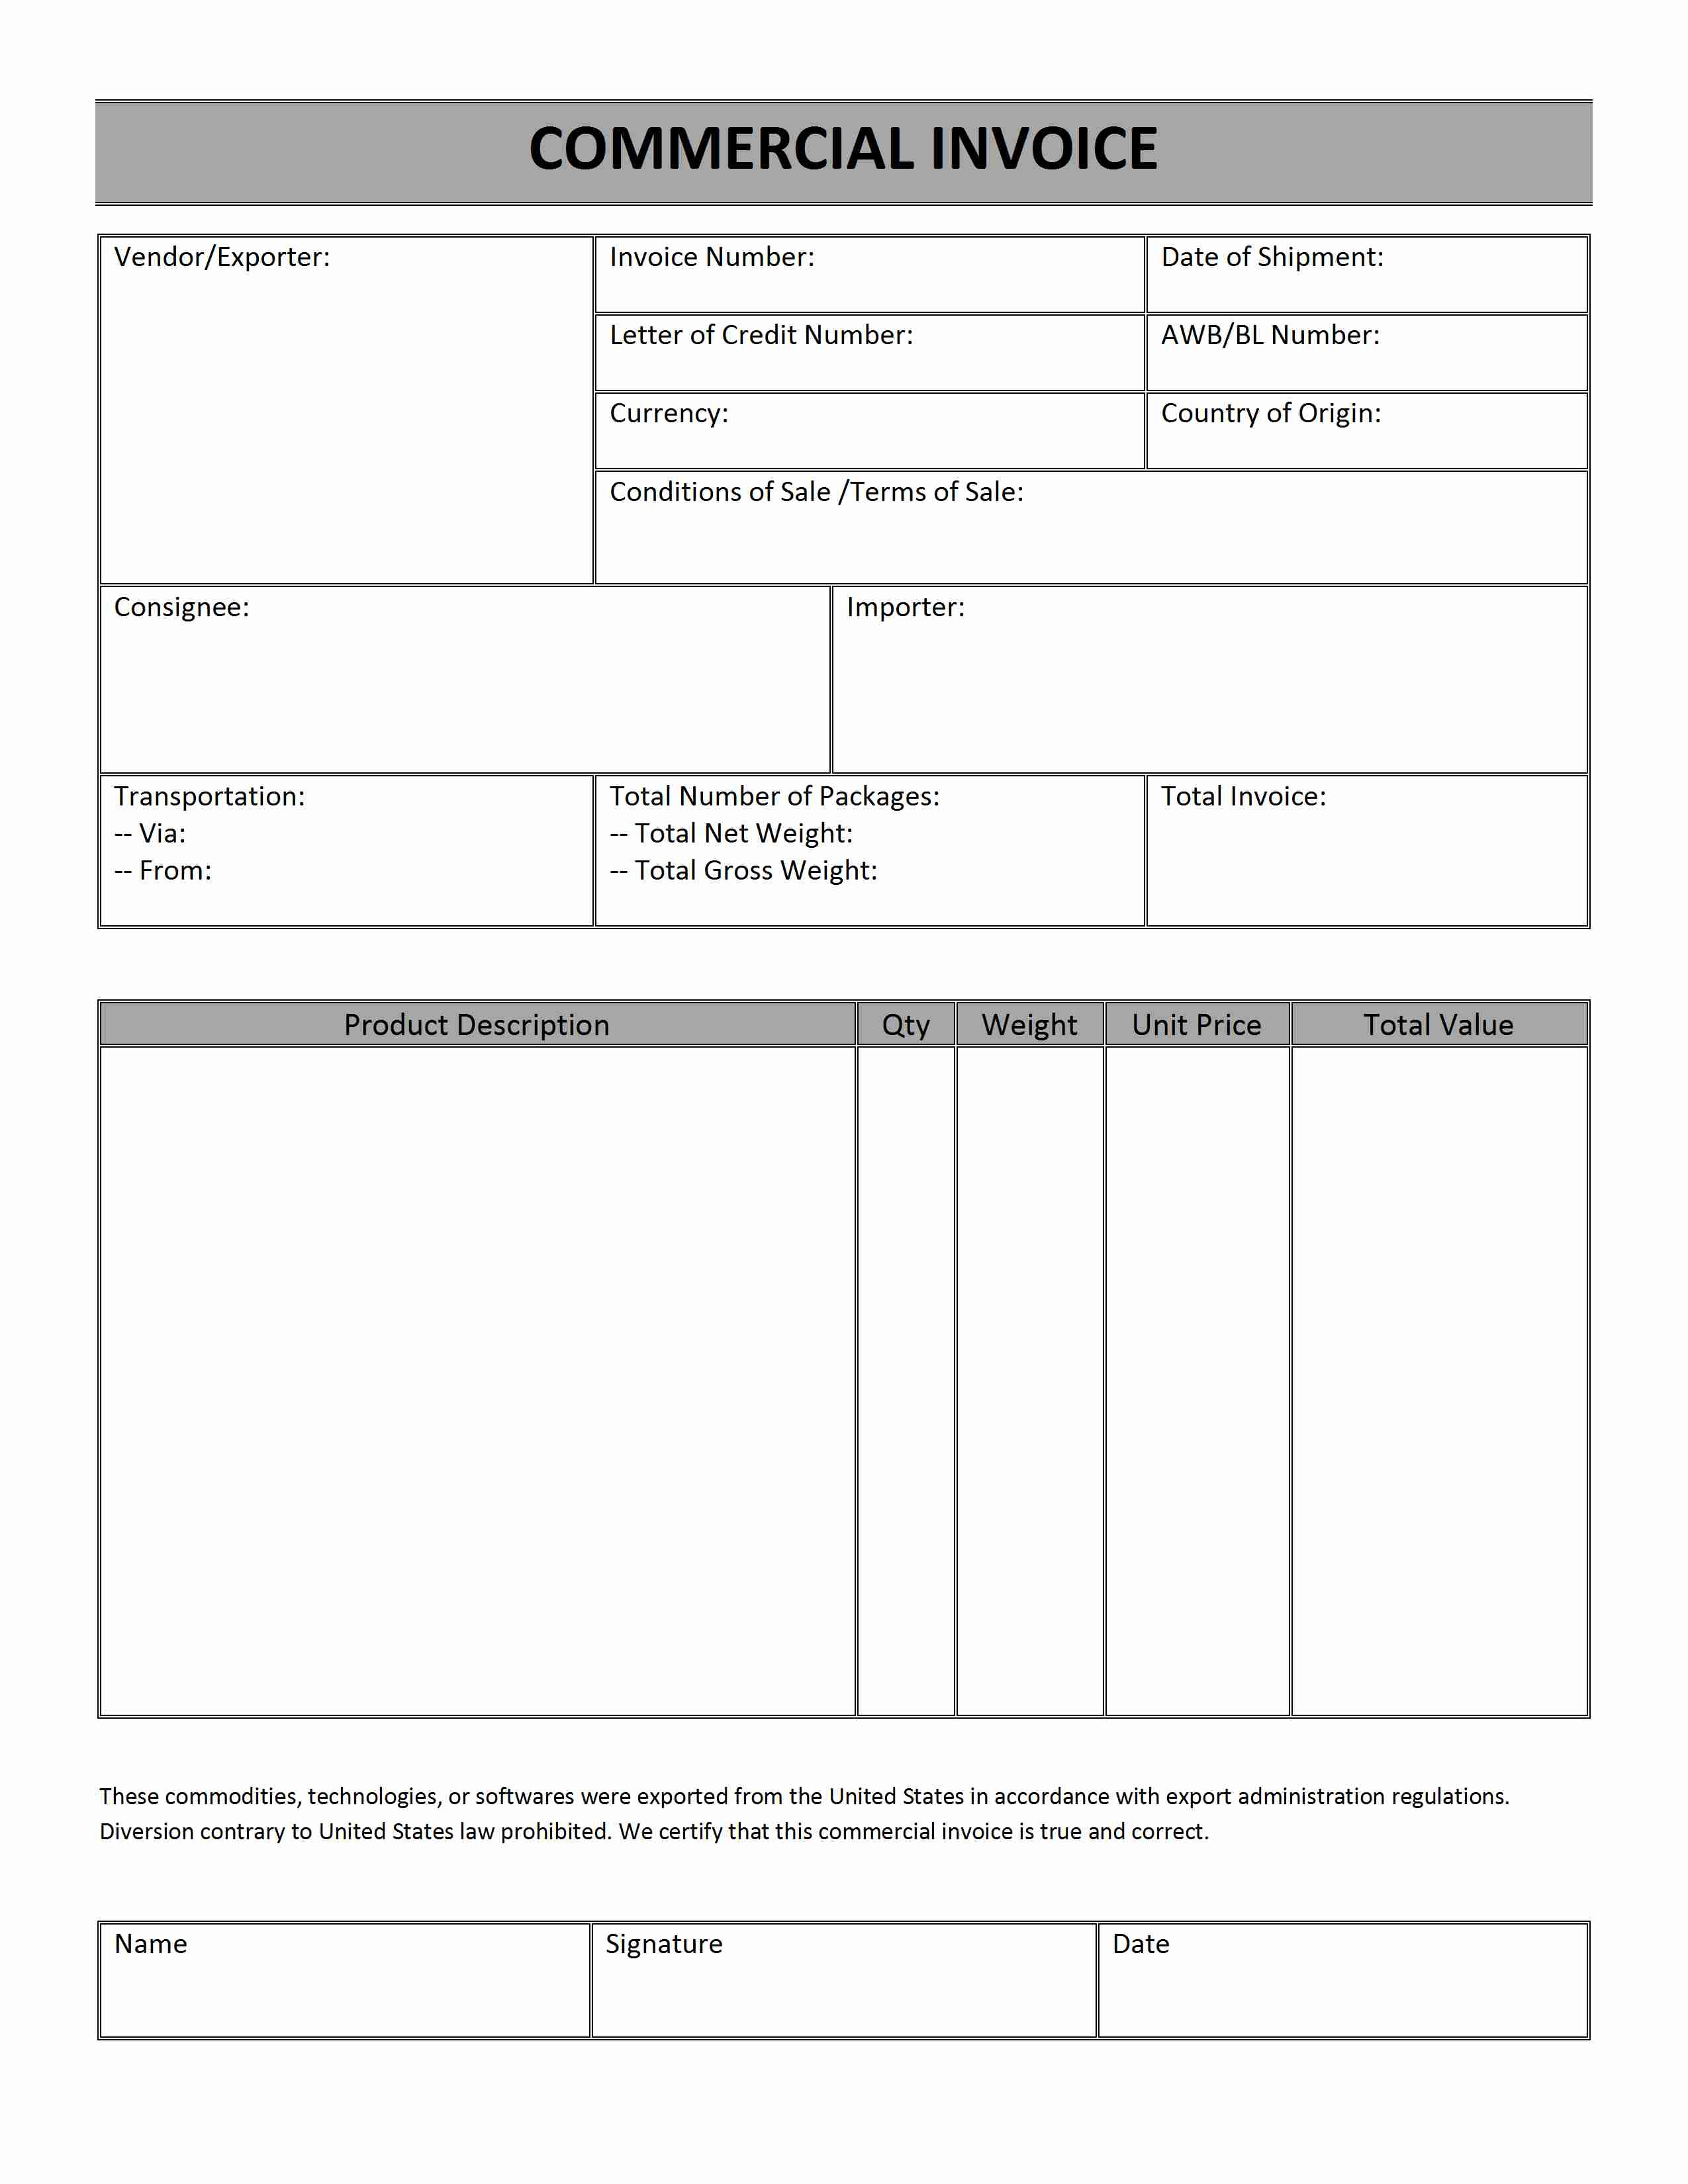 Occupyhistoryus  Pleasing Printable Sales Invoice Simple Invoice Form Free Invoice  With Great Printable Receipt Free  Free Printable Raffle Tickets  Receipt   Printable With Alluring Zoho Invoice Quickbooks Also Translation Invoice Sample In Addition Download Proforma Invoice And Commercial Invoice Template Uk As Well As It Contractor Invoice Template Additionally Website Invoice Sample From Happytomco With Occupyhistoryus  Great Printable Sales Invoice Simple Invoice Form Free Invoice  With Alluring Printable Receipt Free  Free Printable Raffle Tickets  Receipt   Printable And Pleasing Zoho Invoice Quickbooks Also Translation Invoice Sample In Addition Download Proforma Invoice From Happytomco